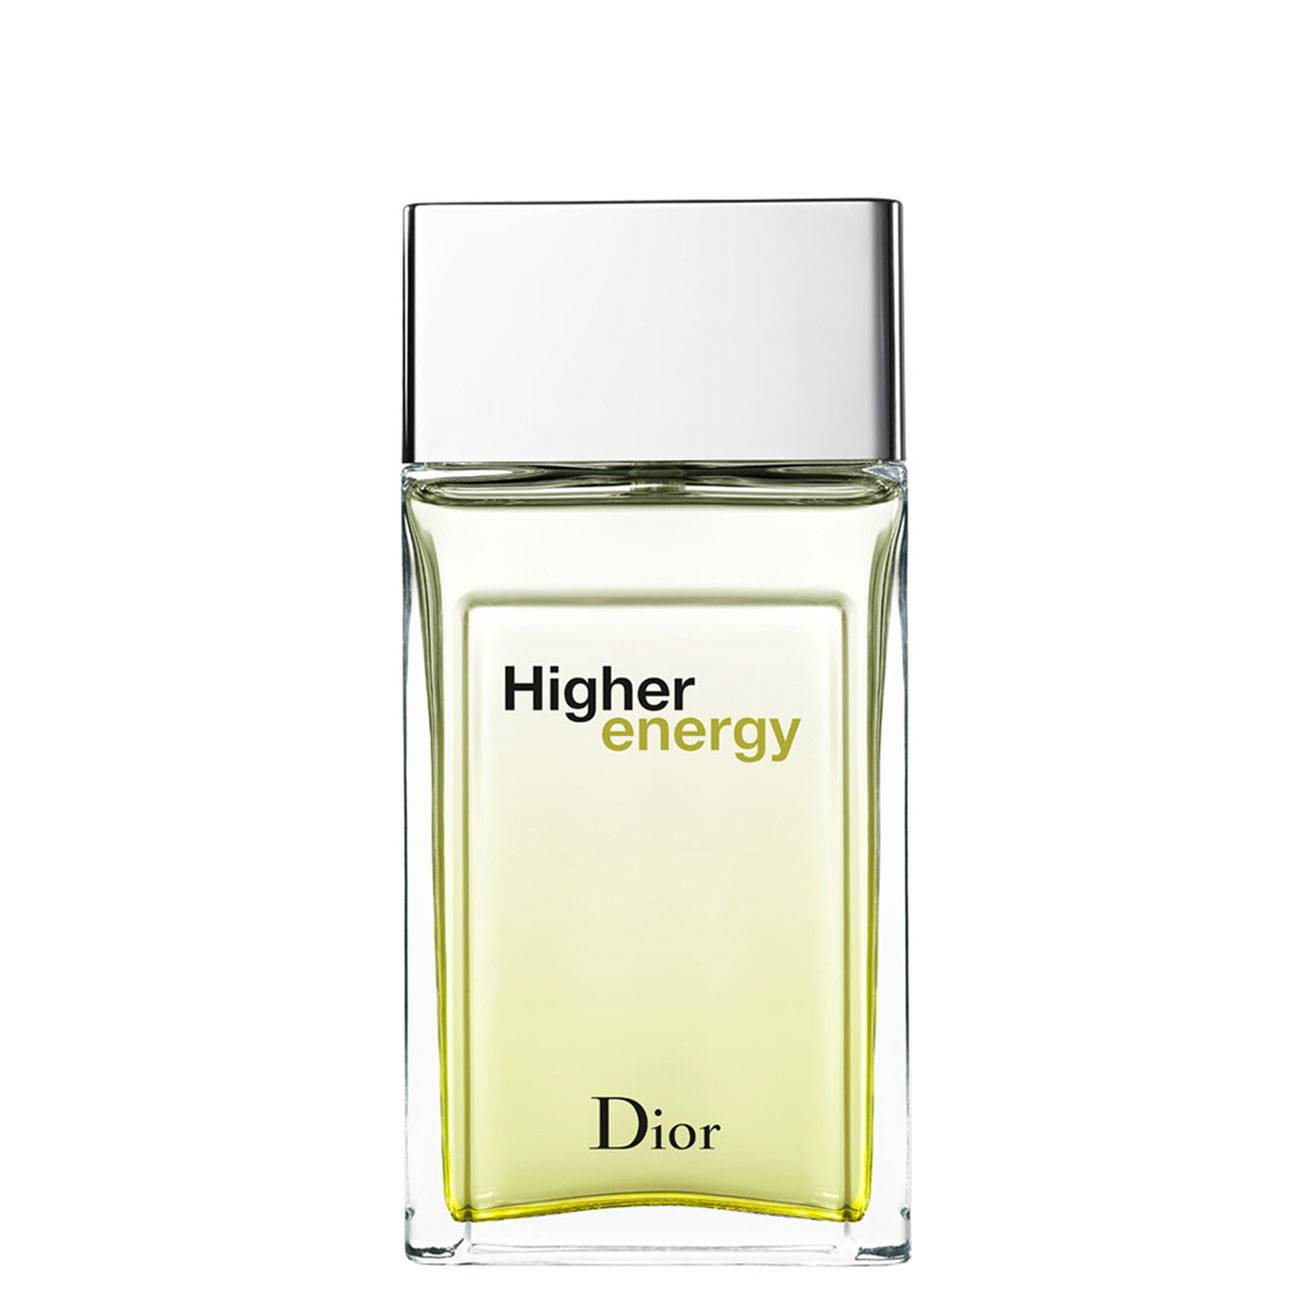 HIGHER ENERGY 100ml